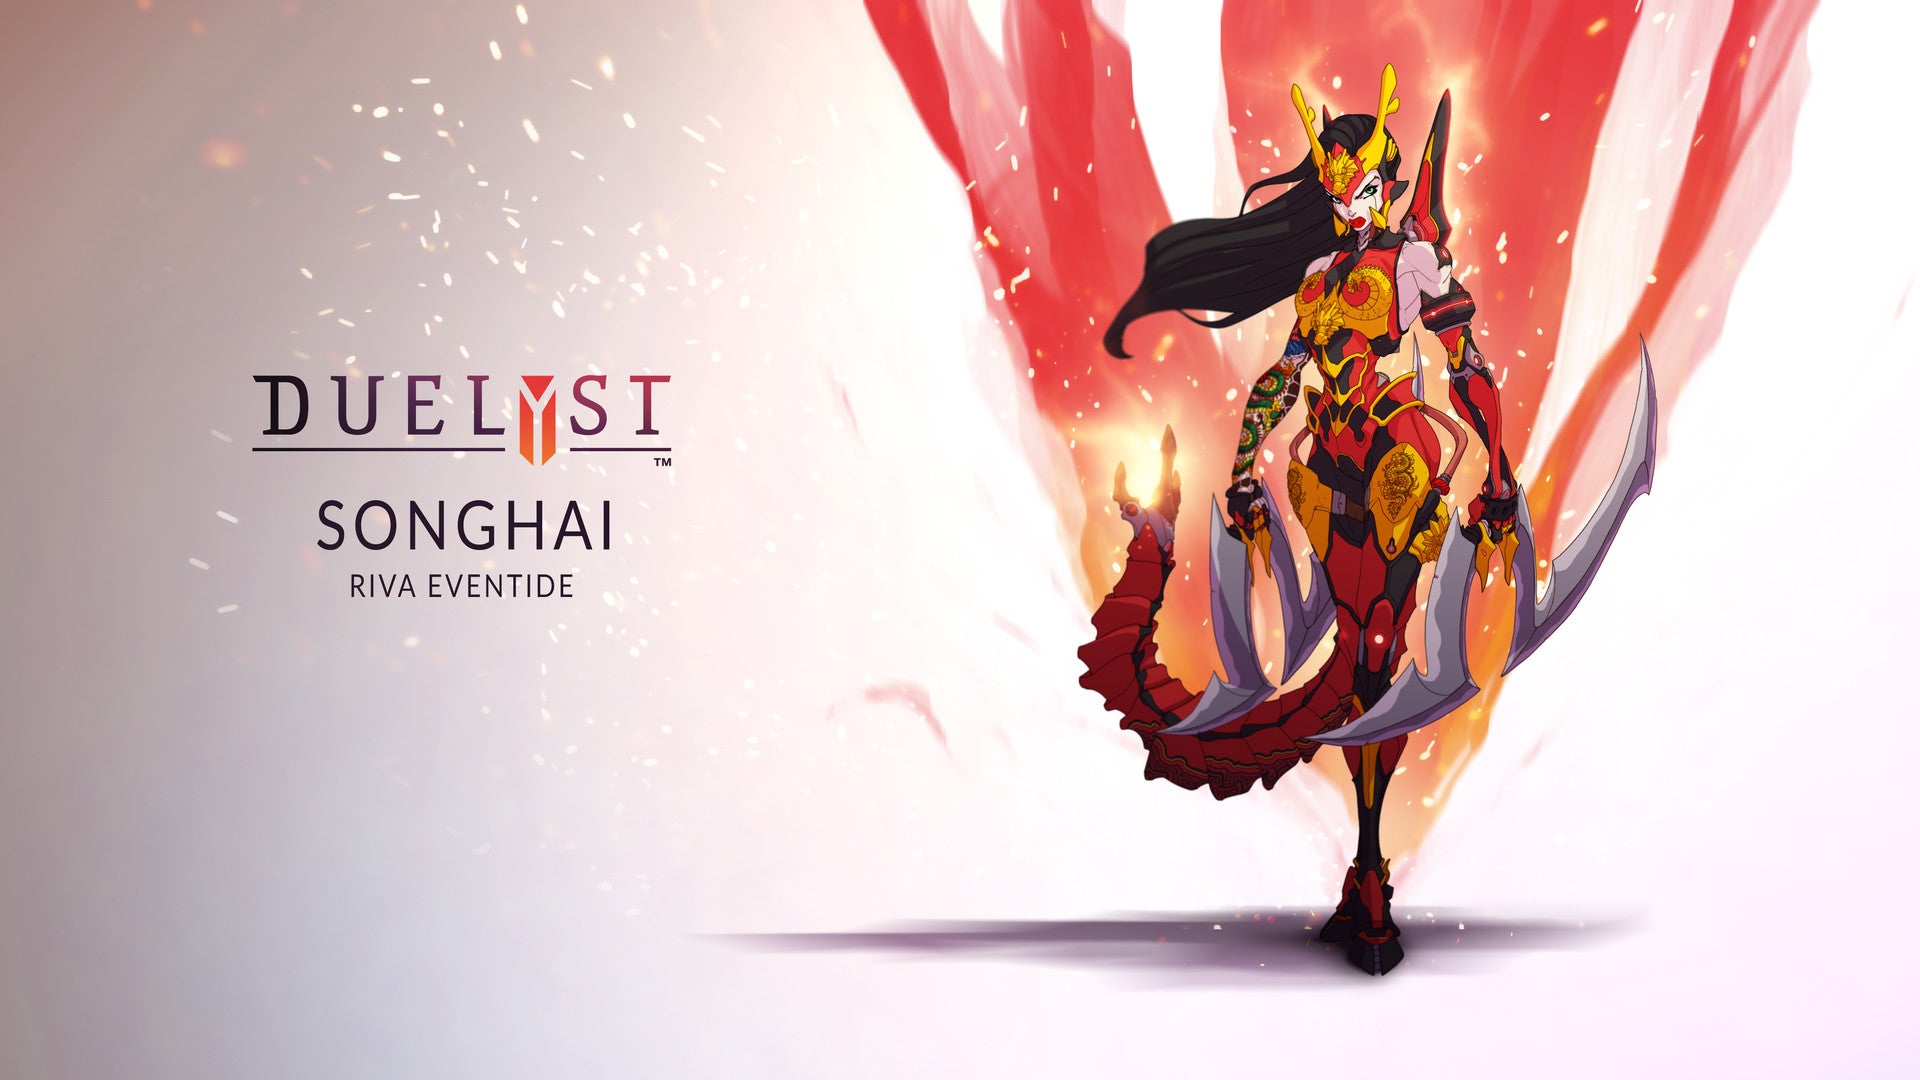 Duelyst Has Some Of The Best Character Art You'll See